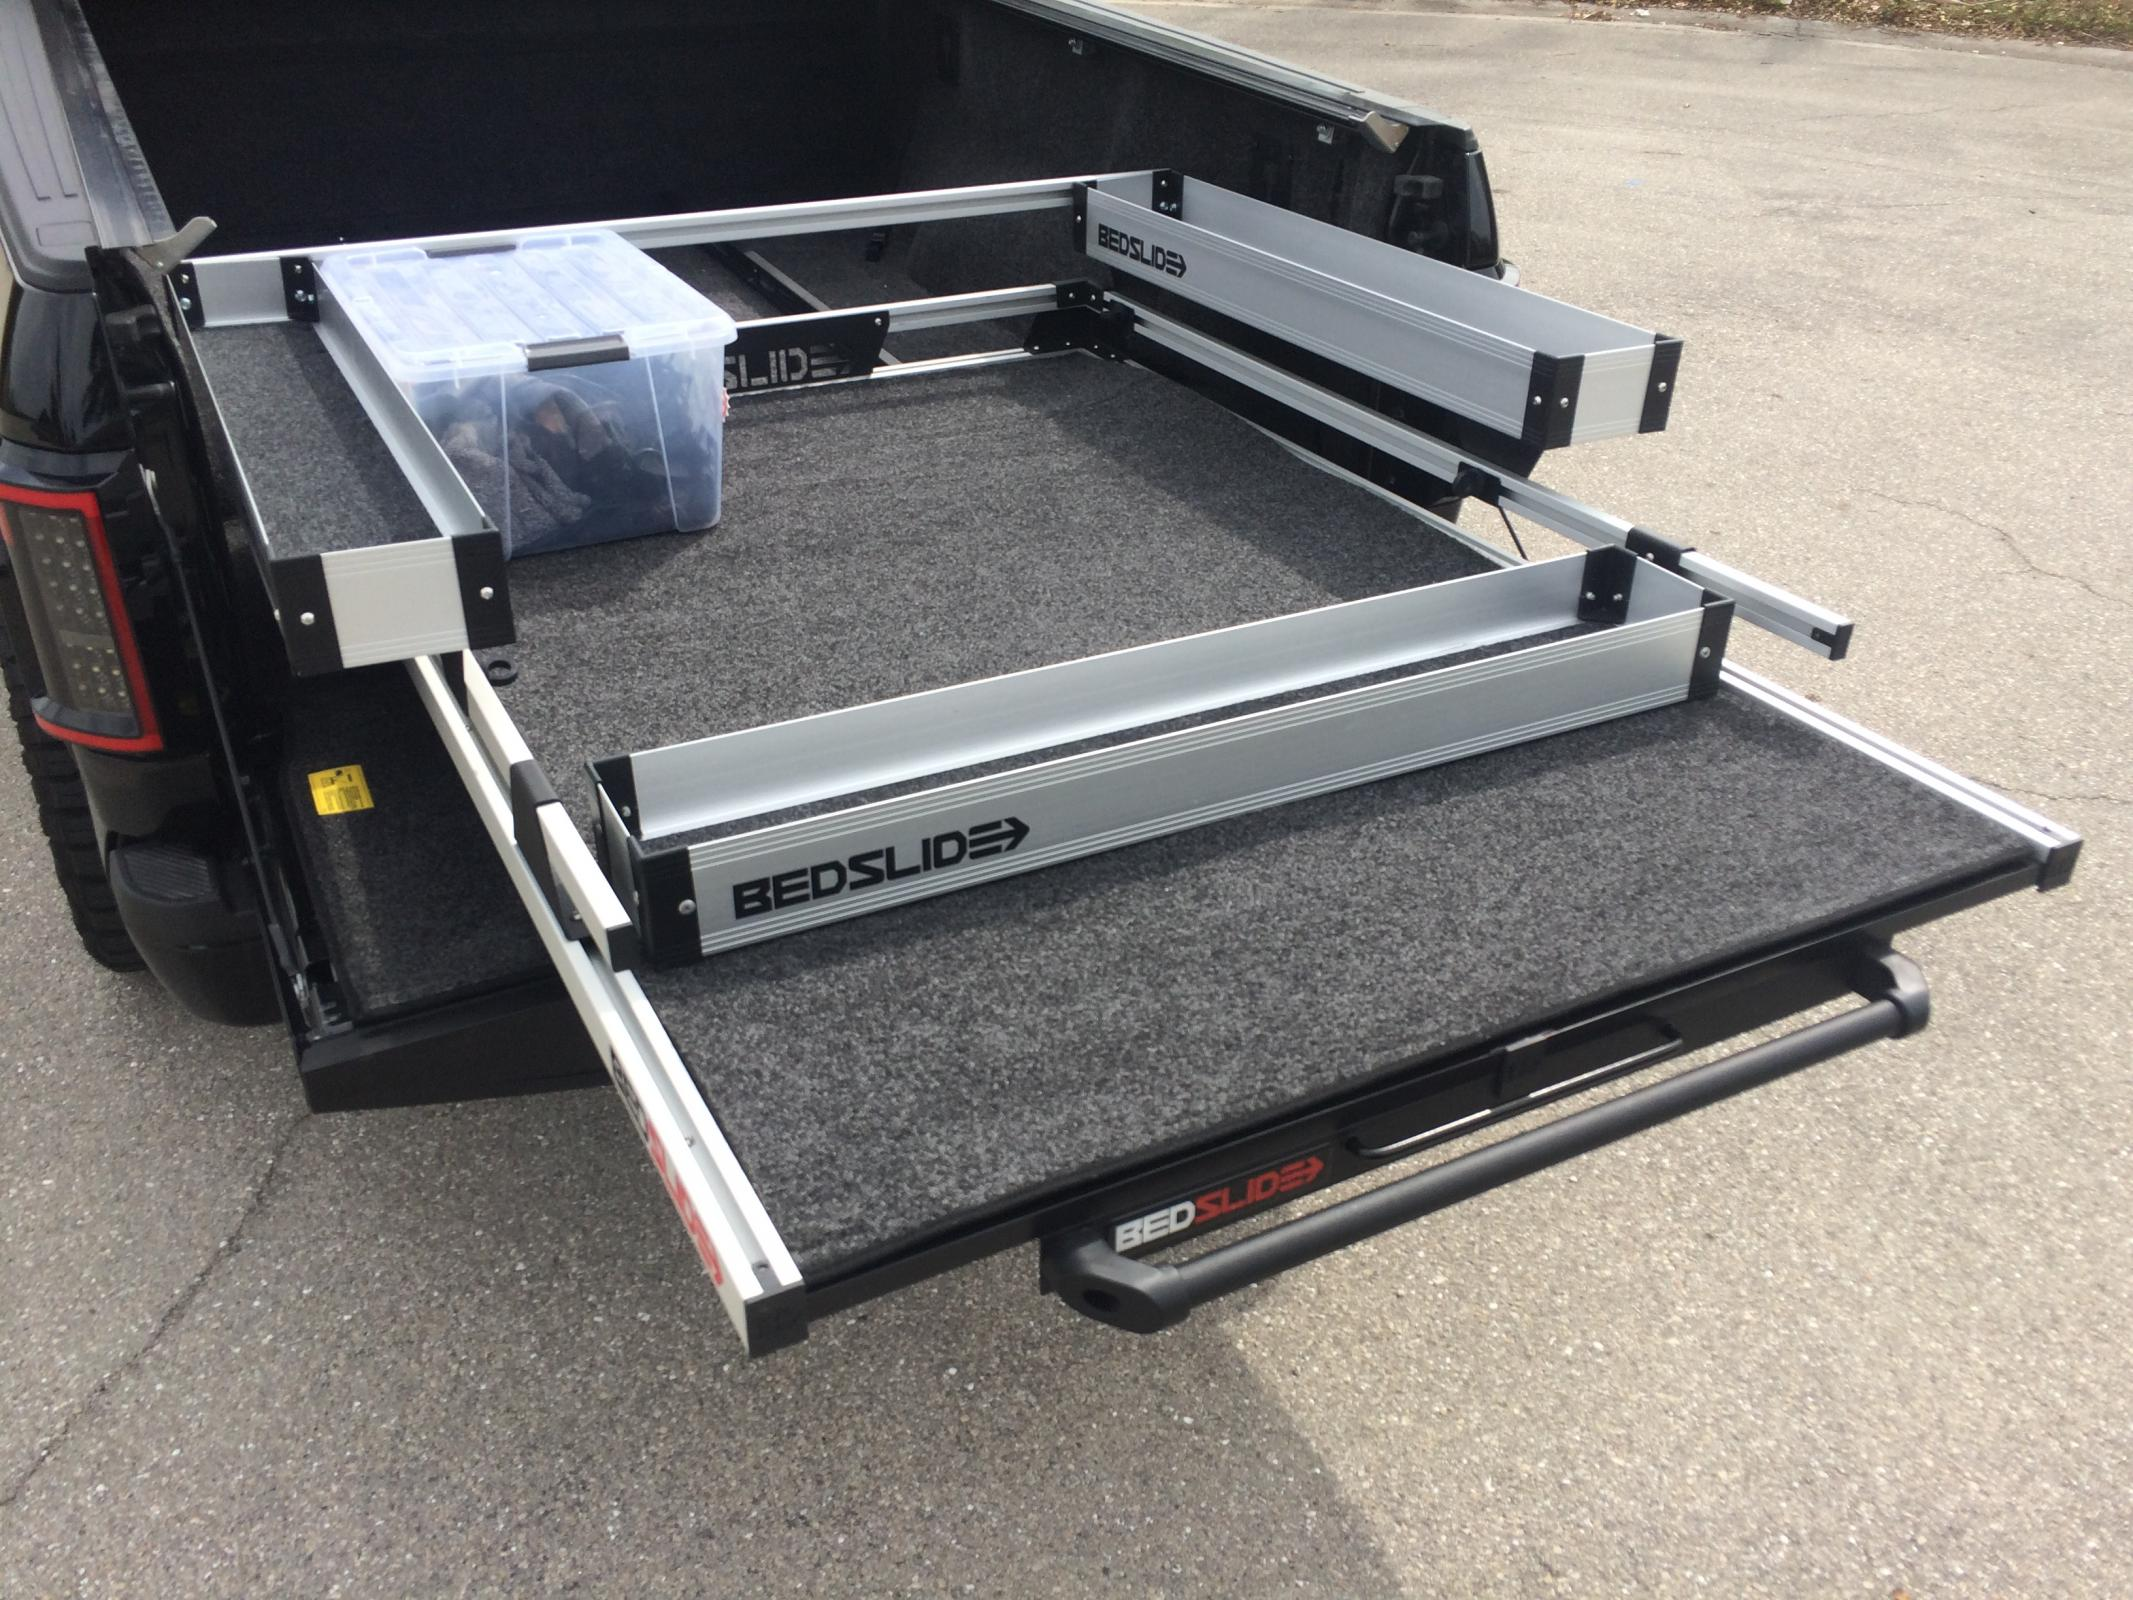 DECKMAT DeckMat For 8 Foot BEDSLIDE Bedliner